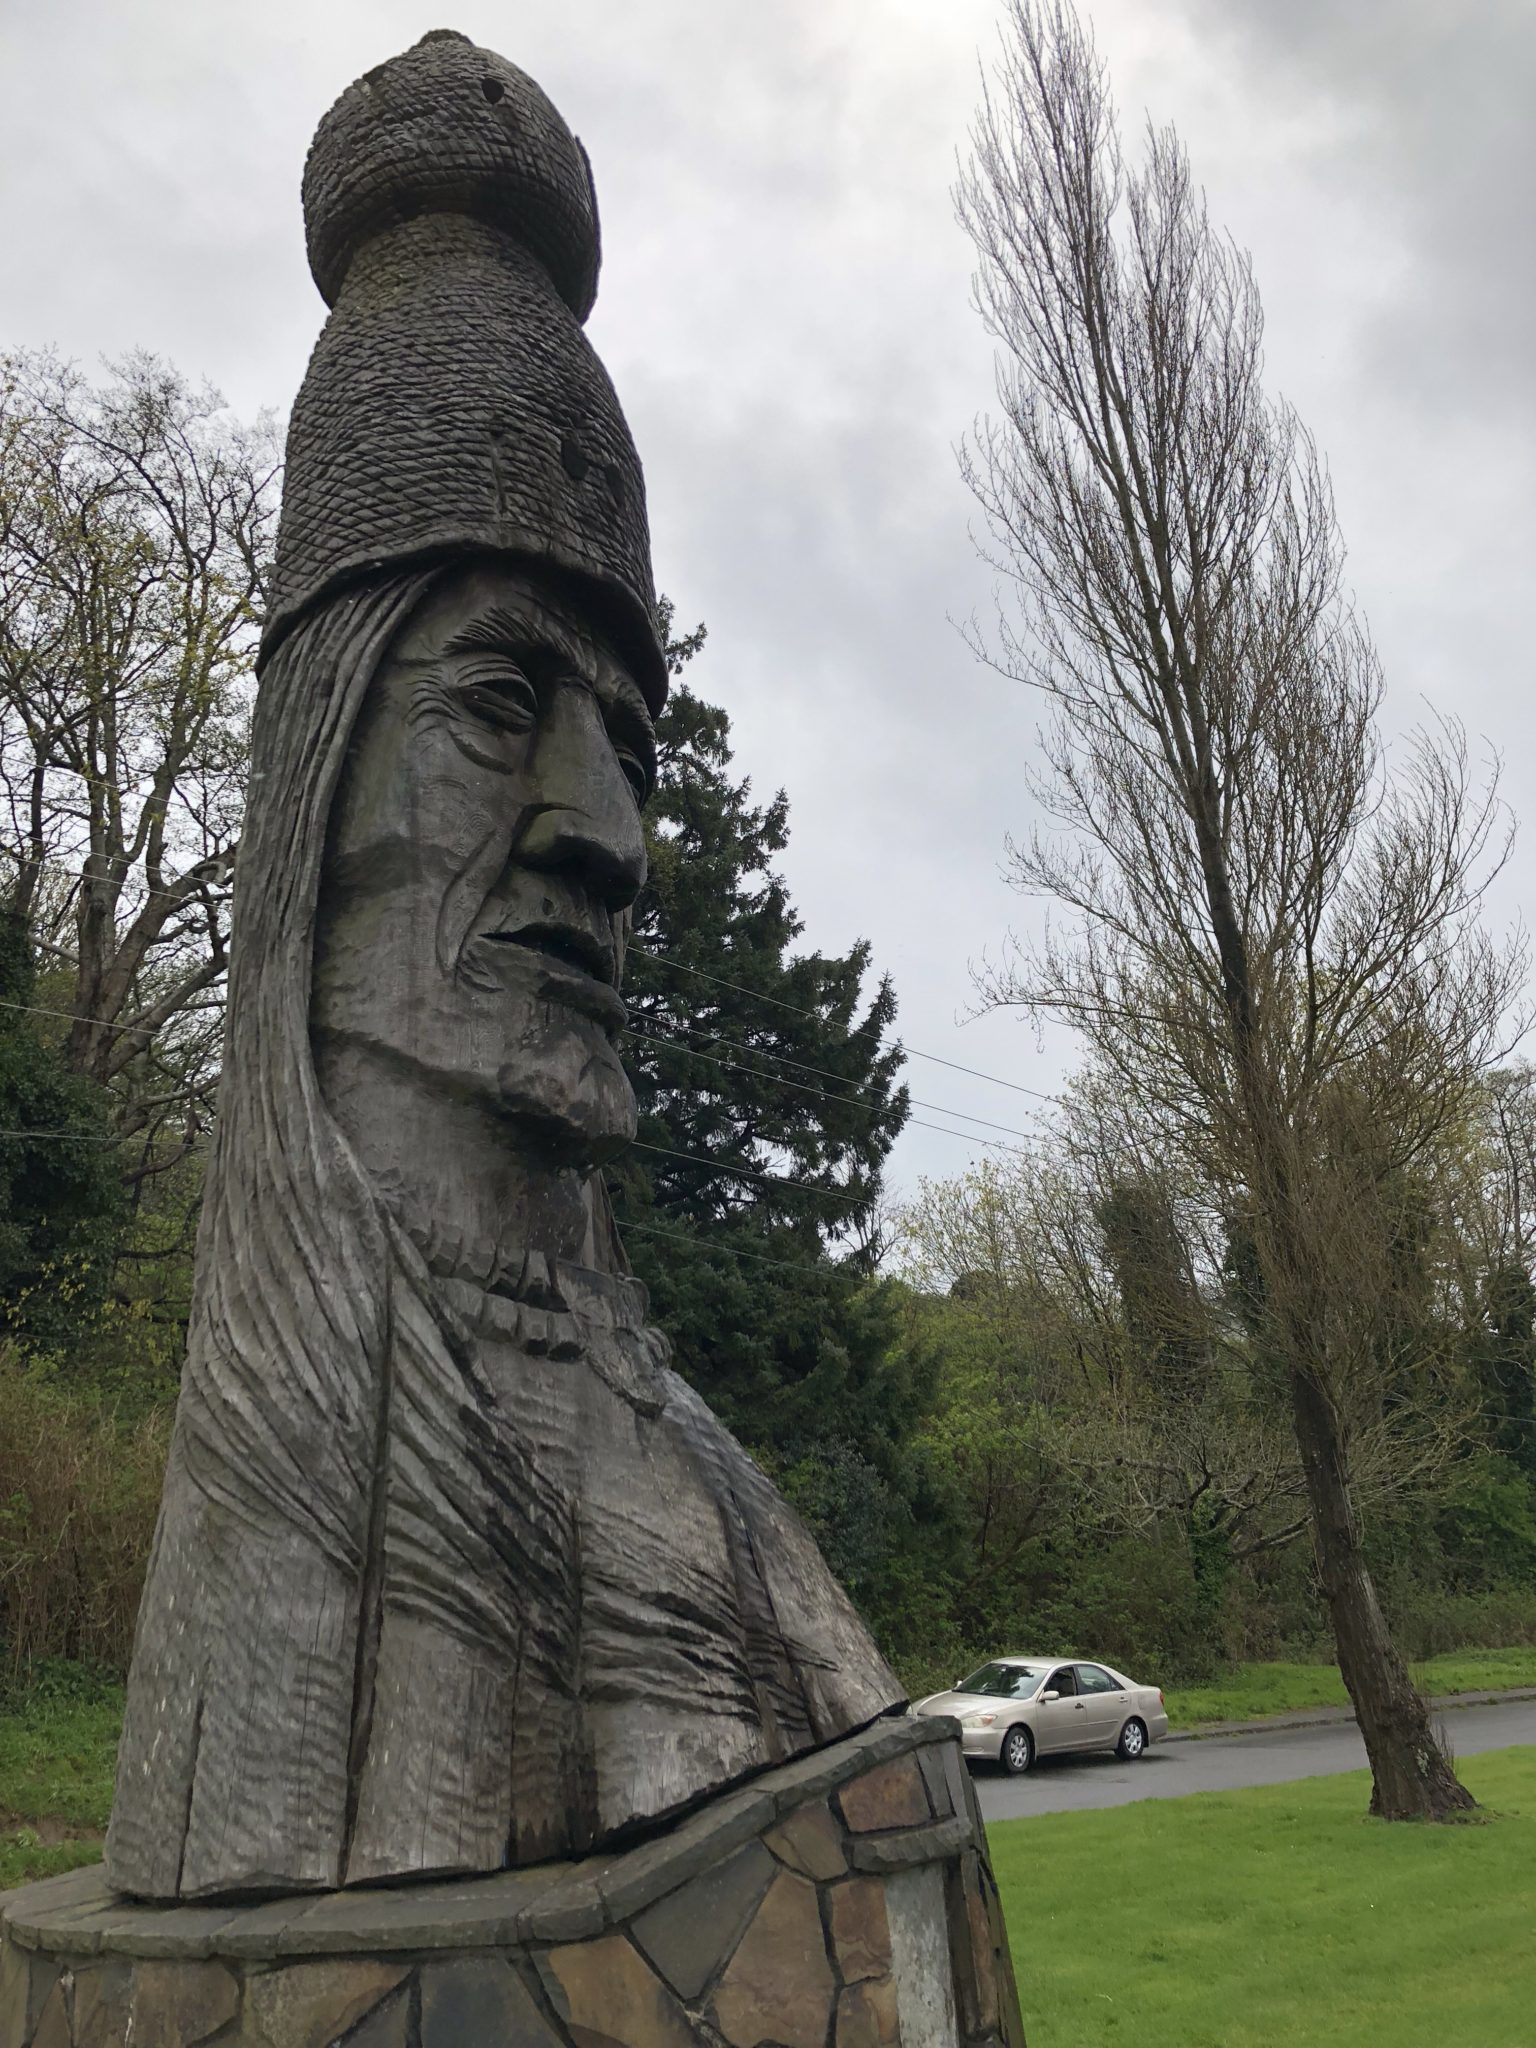 April 2018 Cross-Country Road Trip: Peter Toth's Whispering Giants